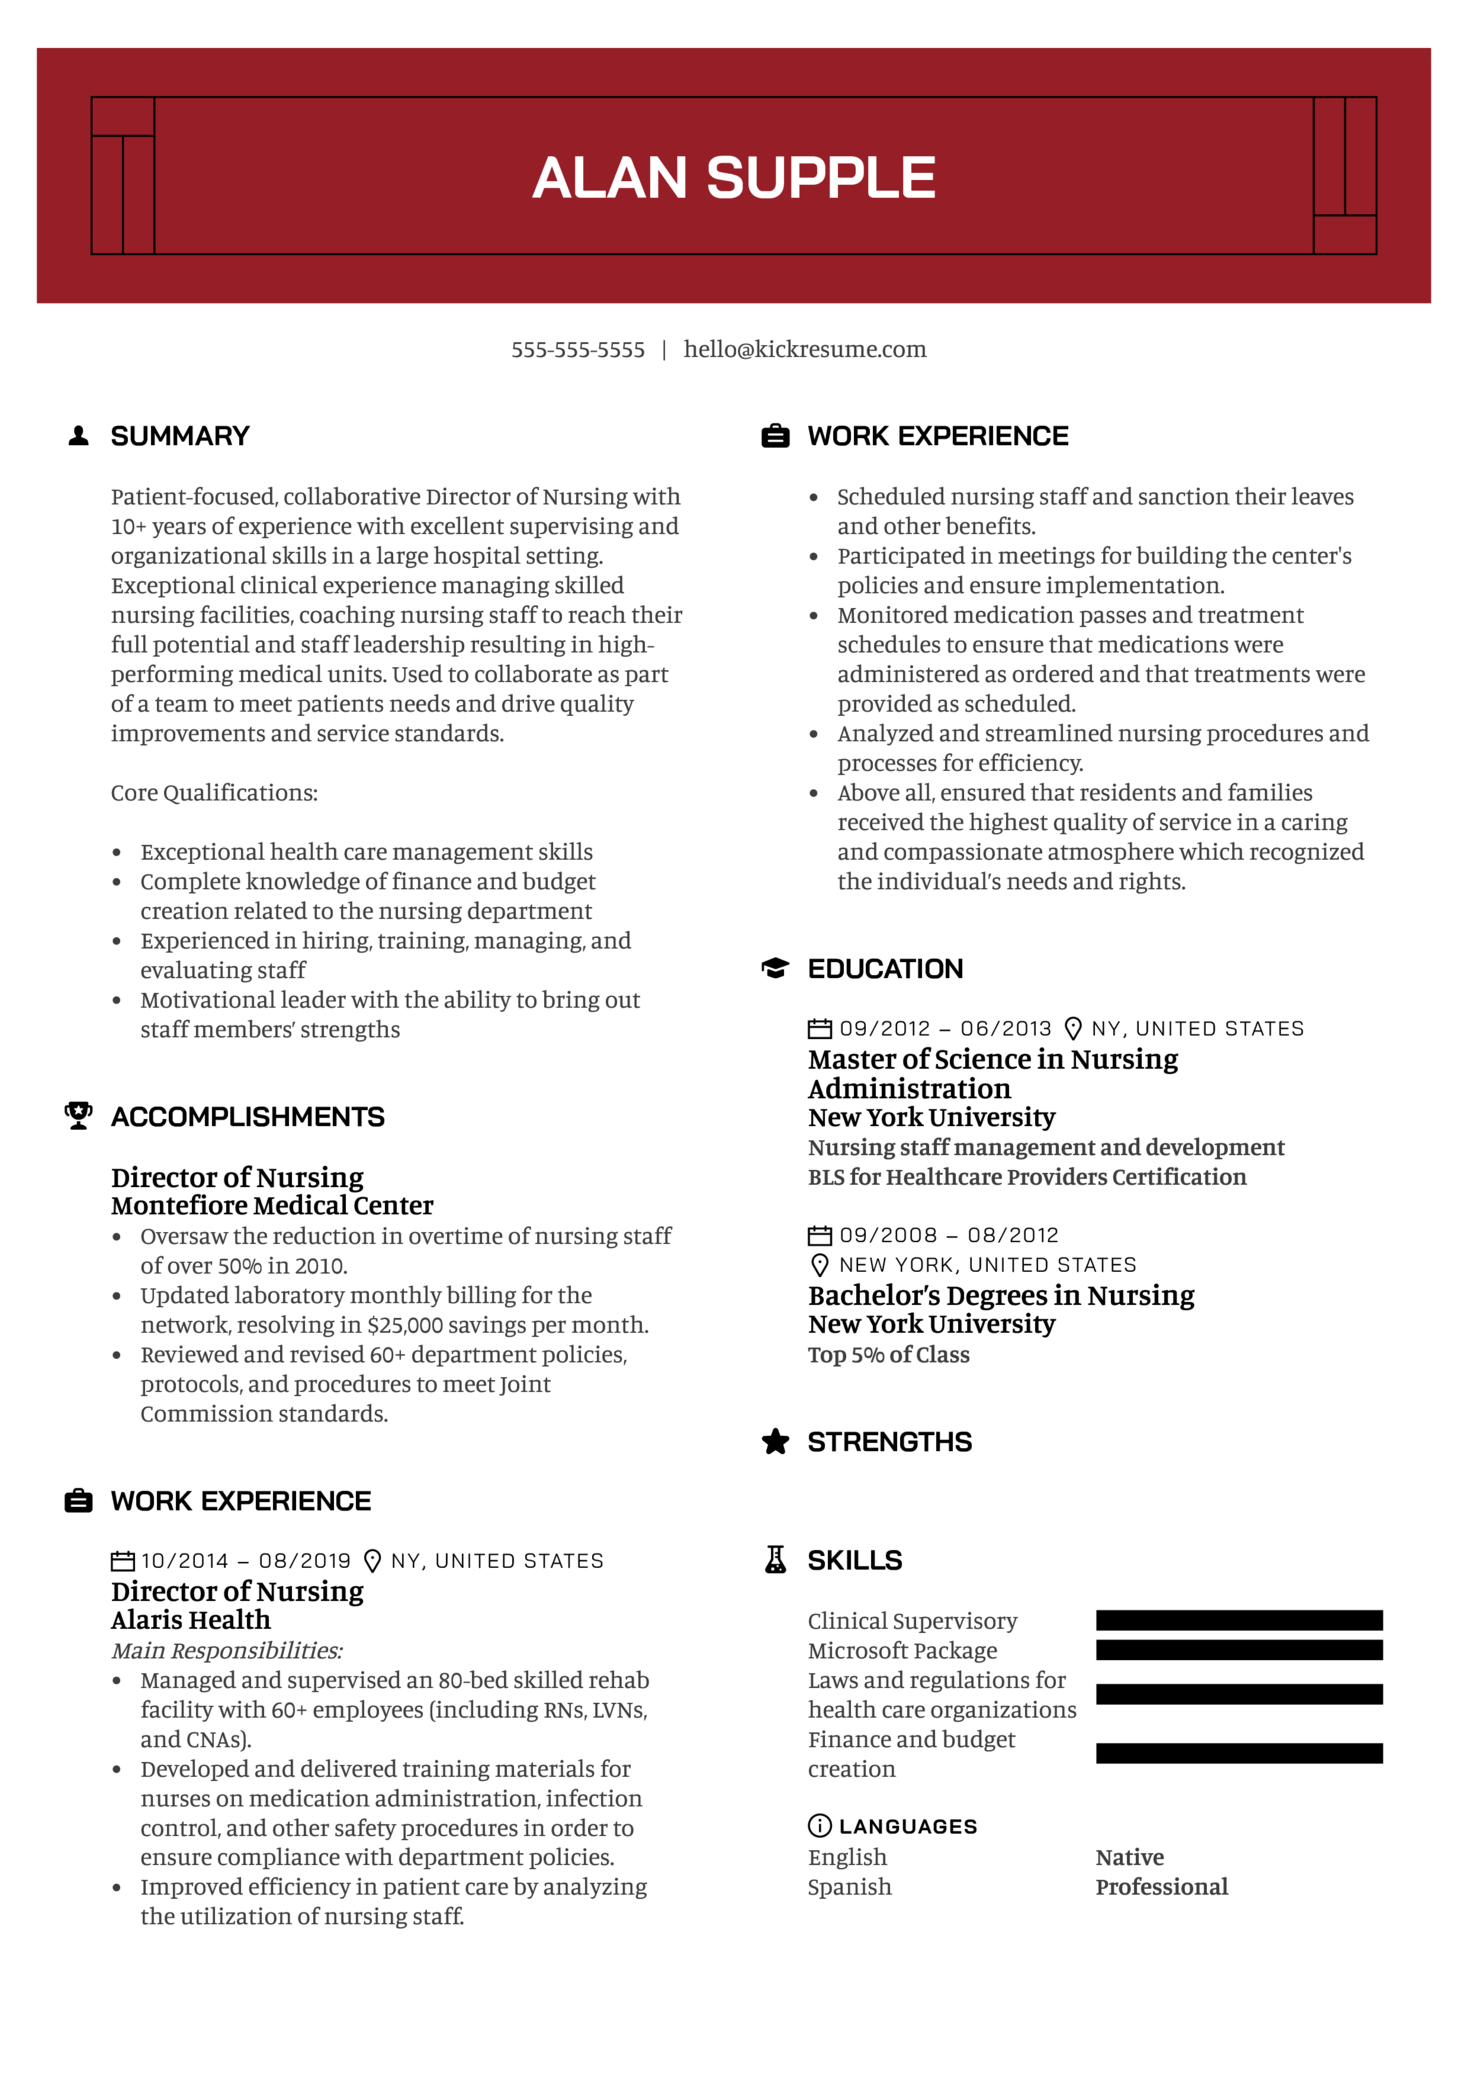 Director of Nursing Resume Example (časť 1)